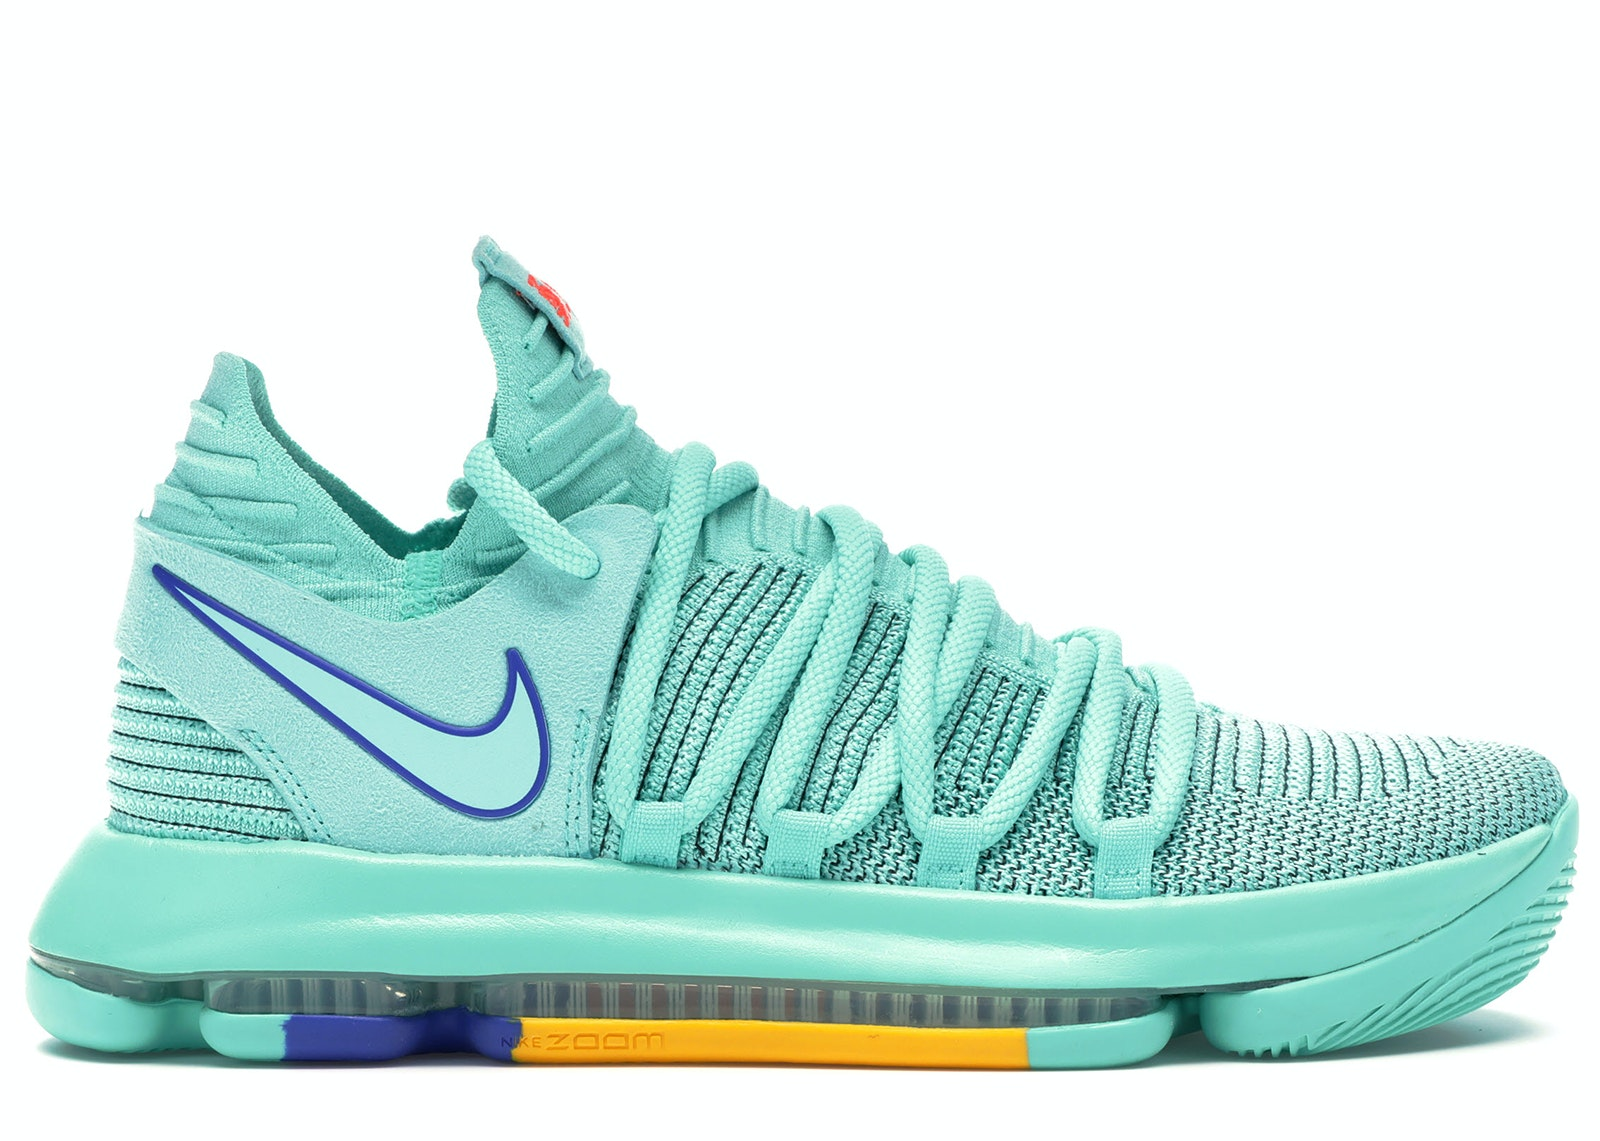 KD 10 Hyper Turquoise